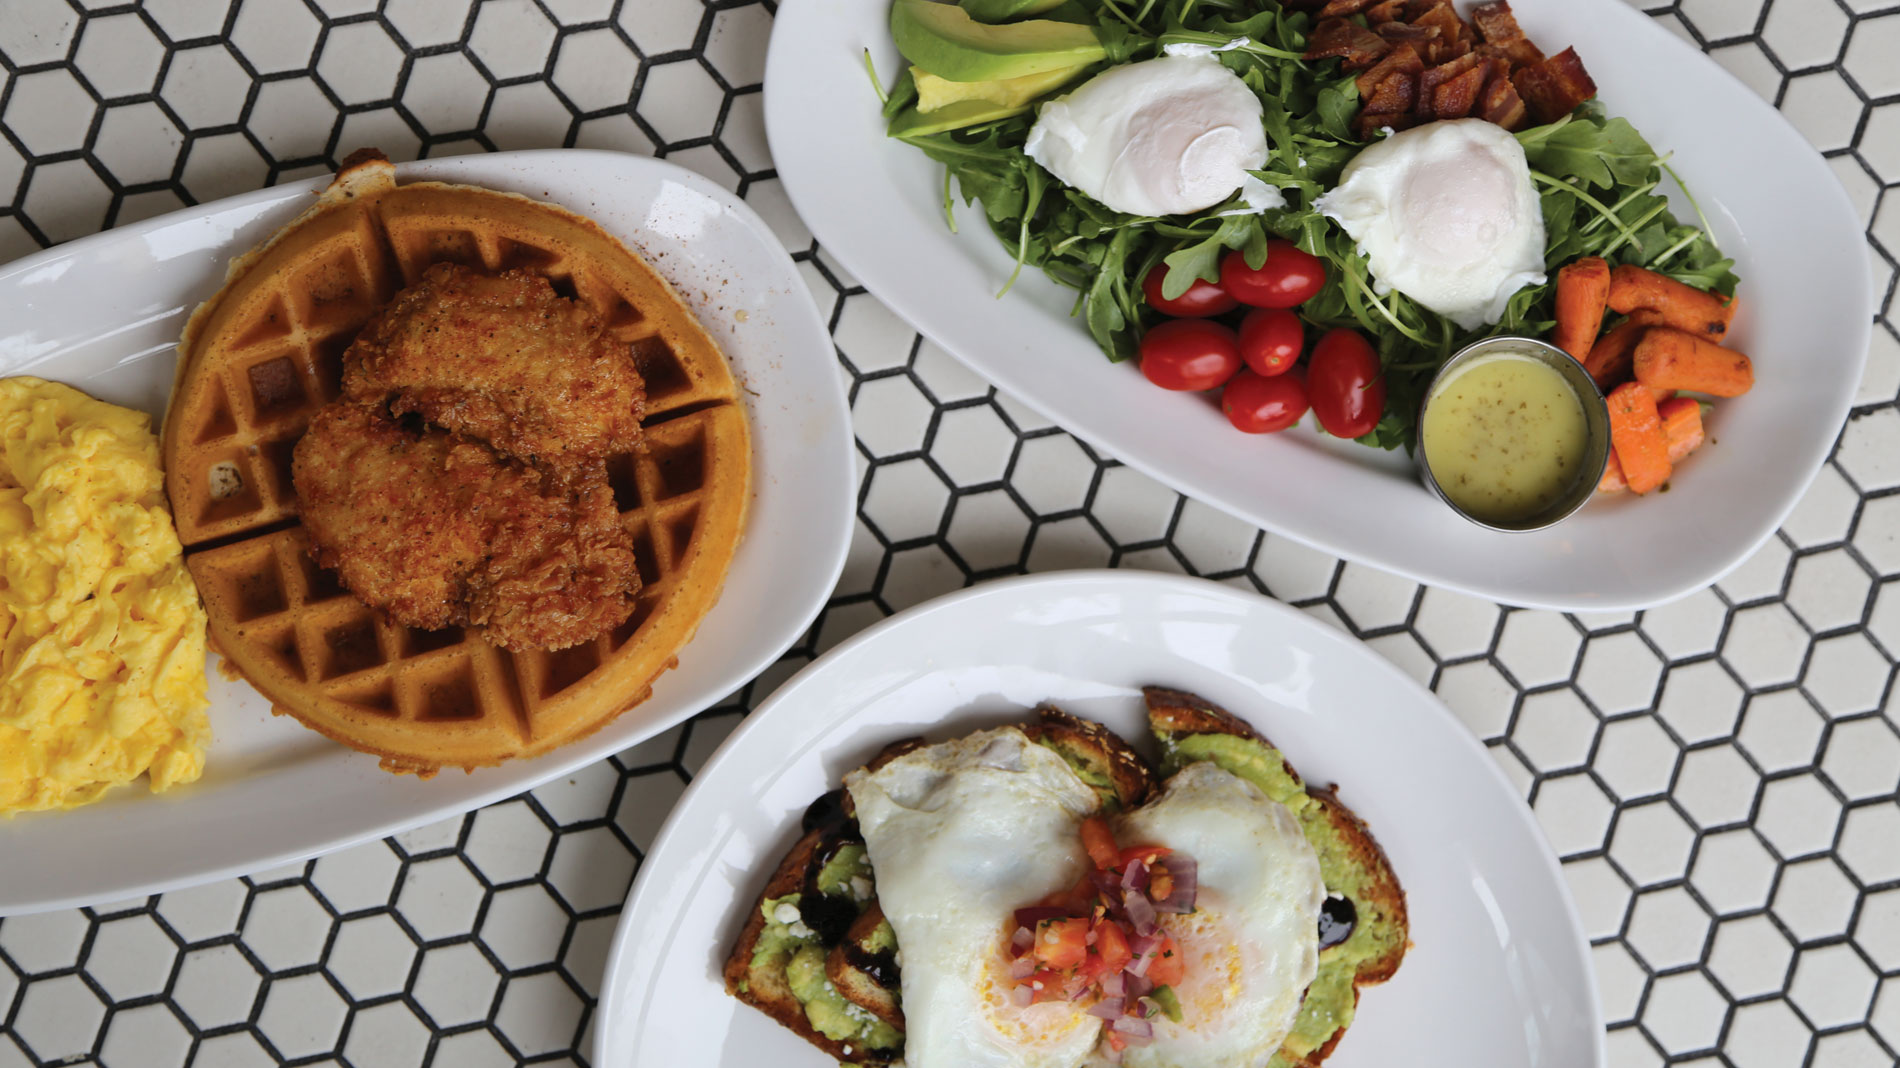 chicken and waffles, breakfast salad and avocado toast from kingside diner in clayton